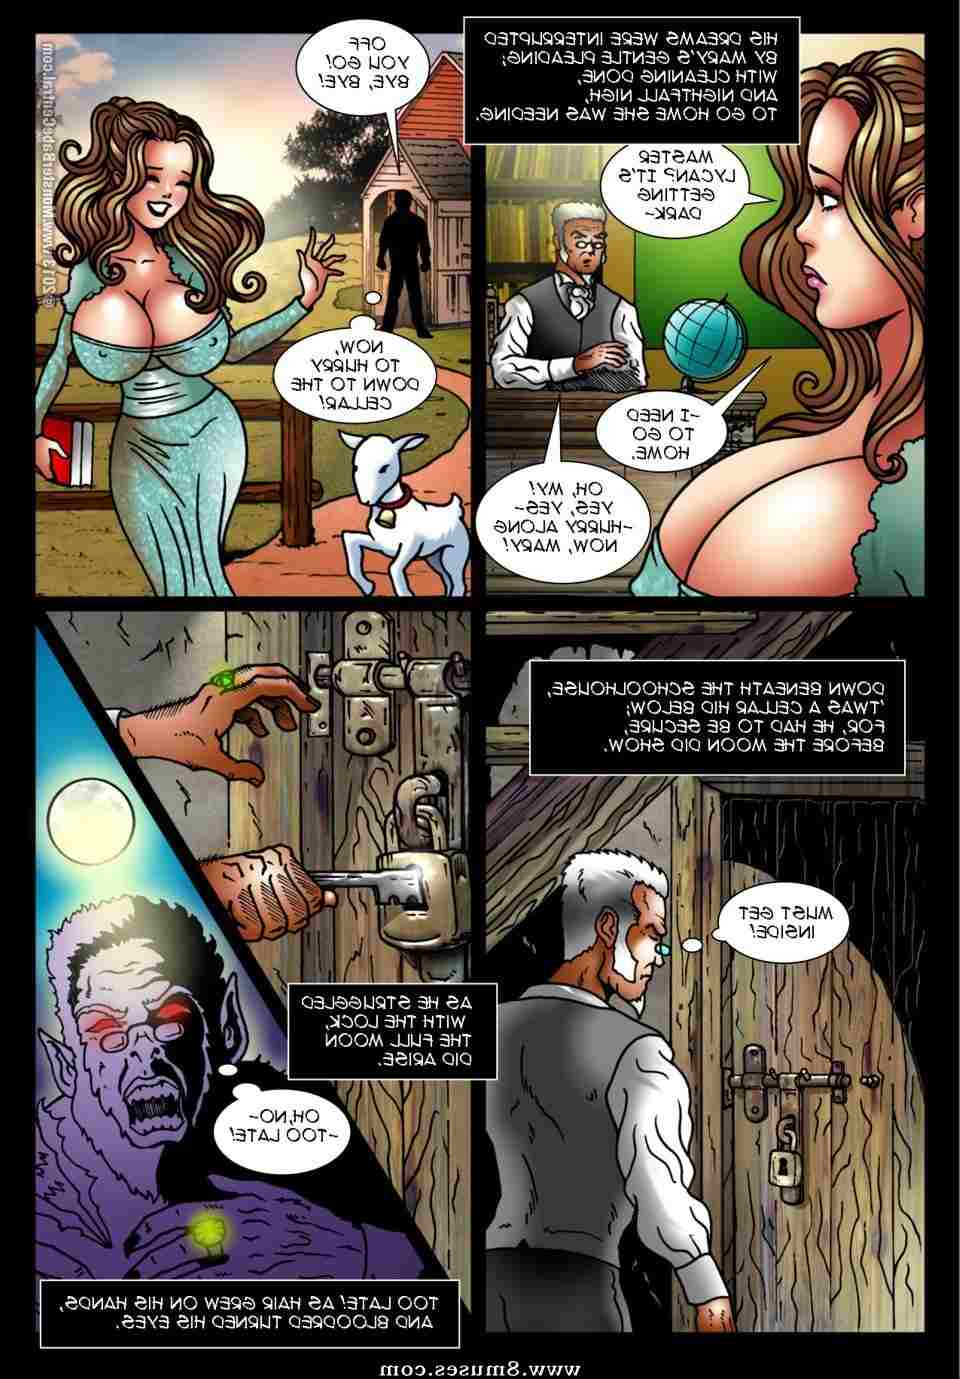 Central-Comics/Horror-Babe-Central/Fable-of-Fright Fable_of_Fright__8muses_-_Sex_and_Porn_Comics_215.jpg